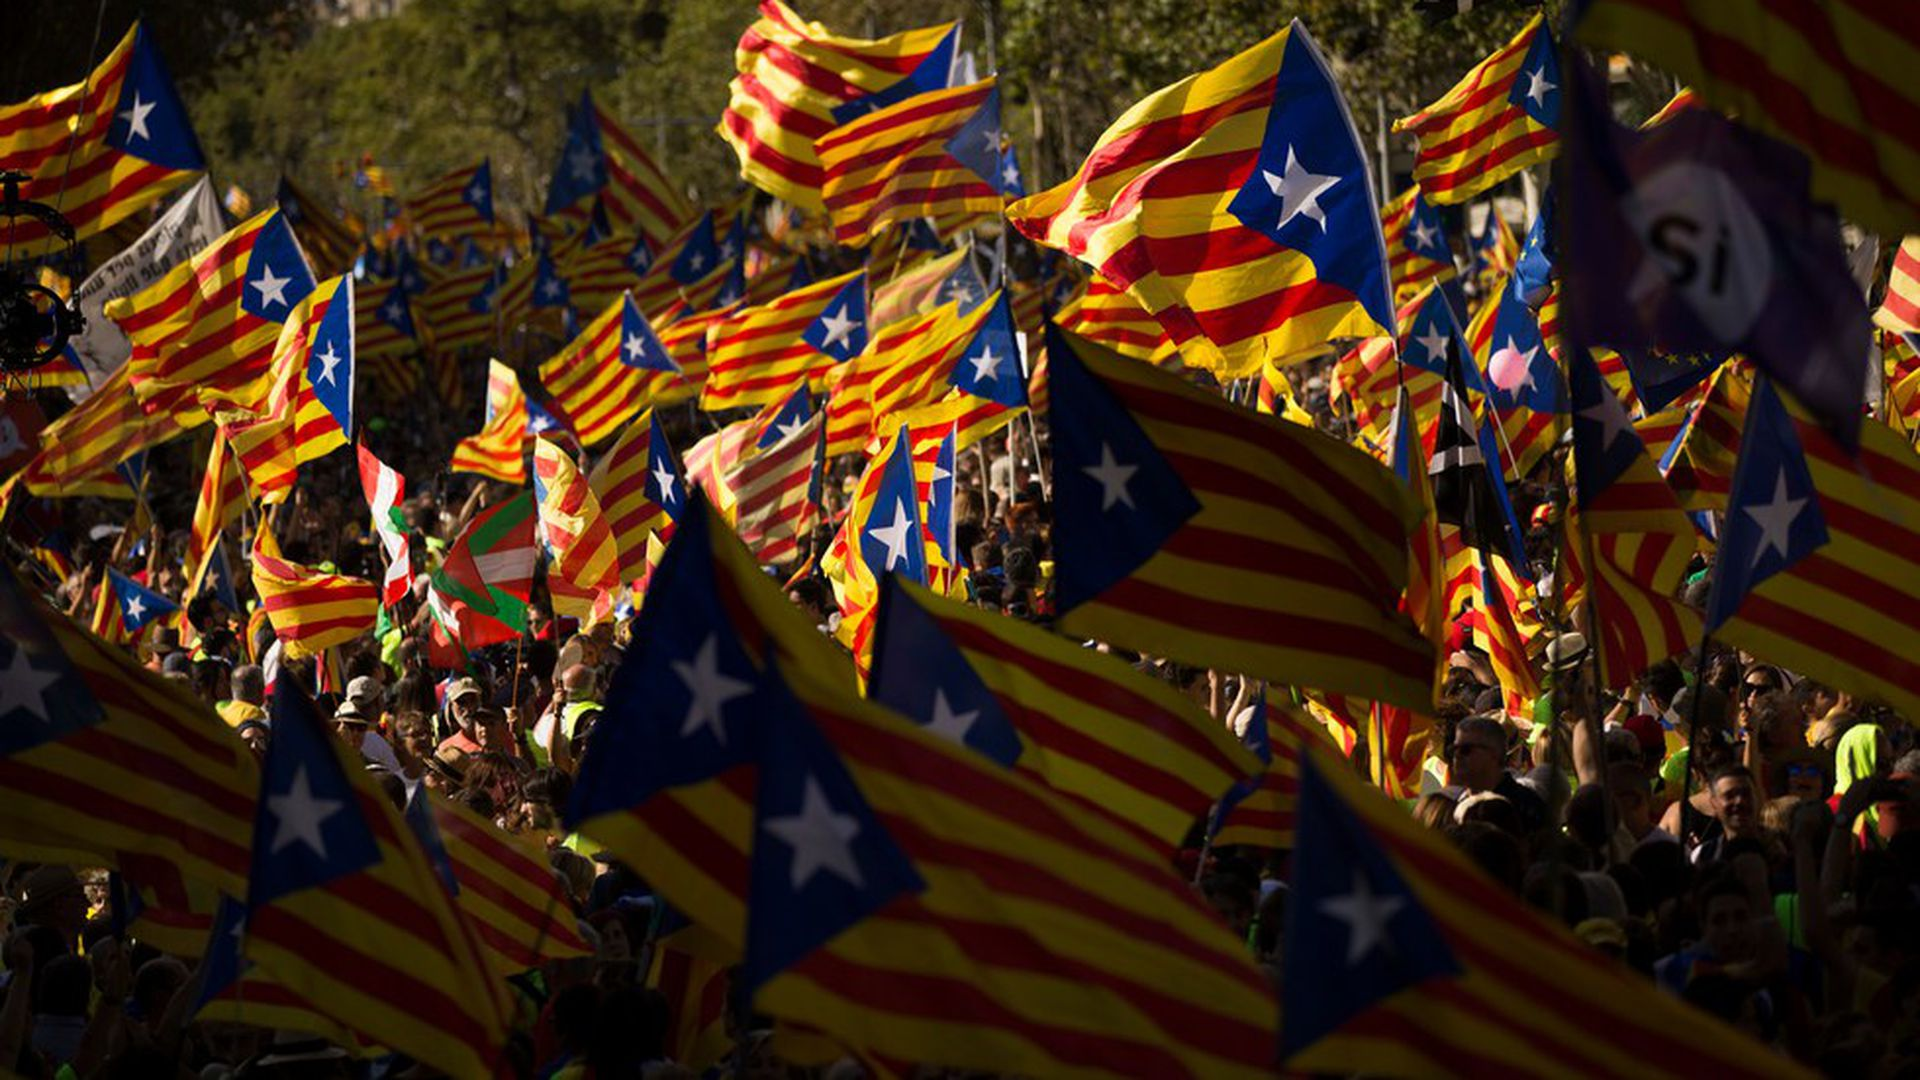 Ousted President of Catalonia says hes not seeking asylum   Axios 1920x1080